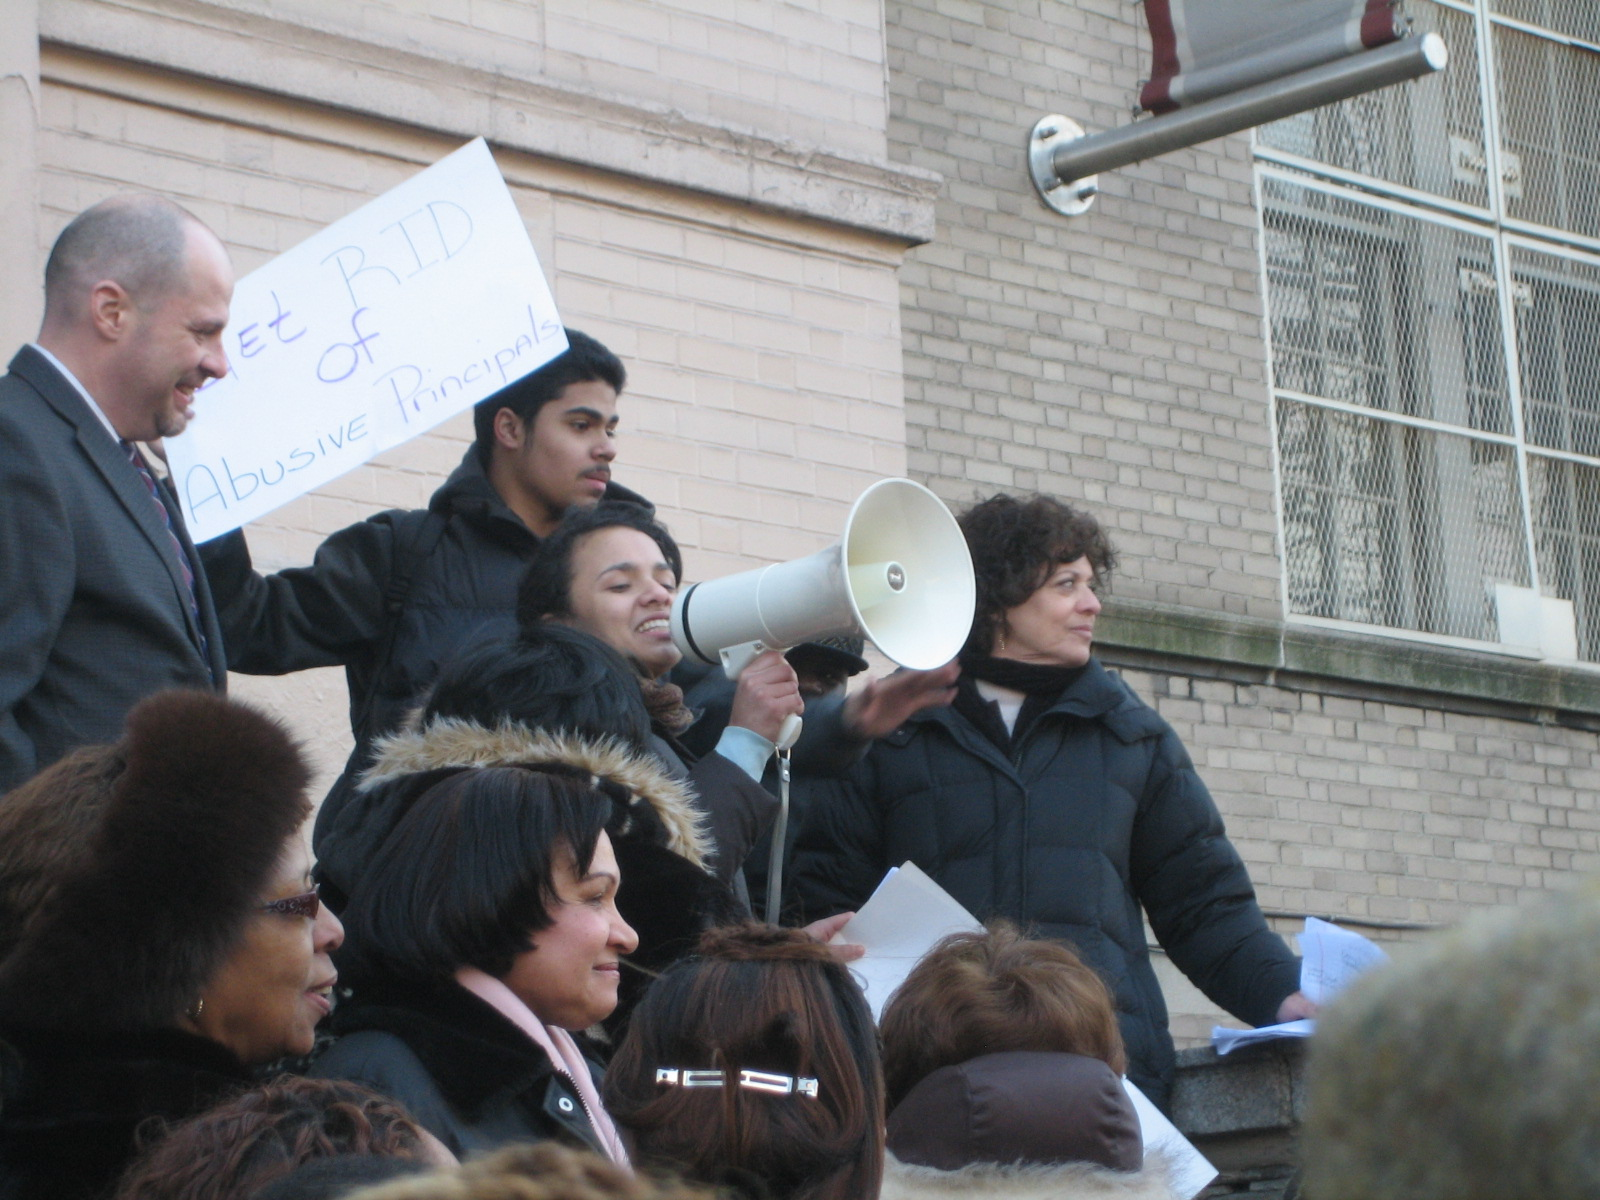 Fordham HS for the Arts teacher addresses the gathered throng